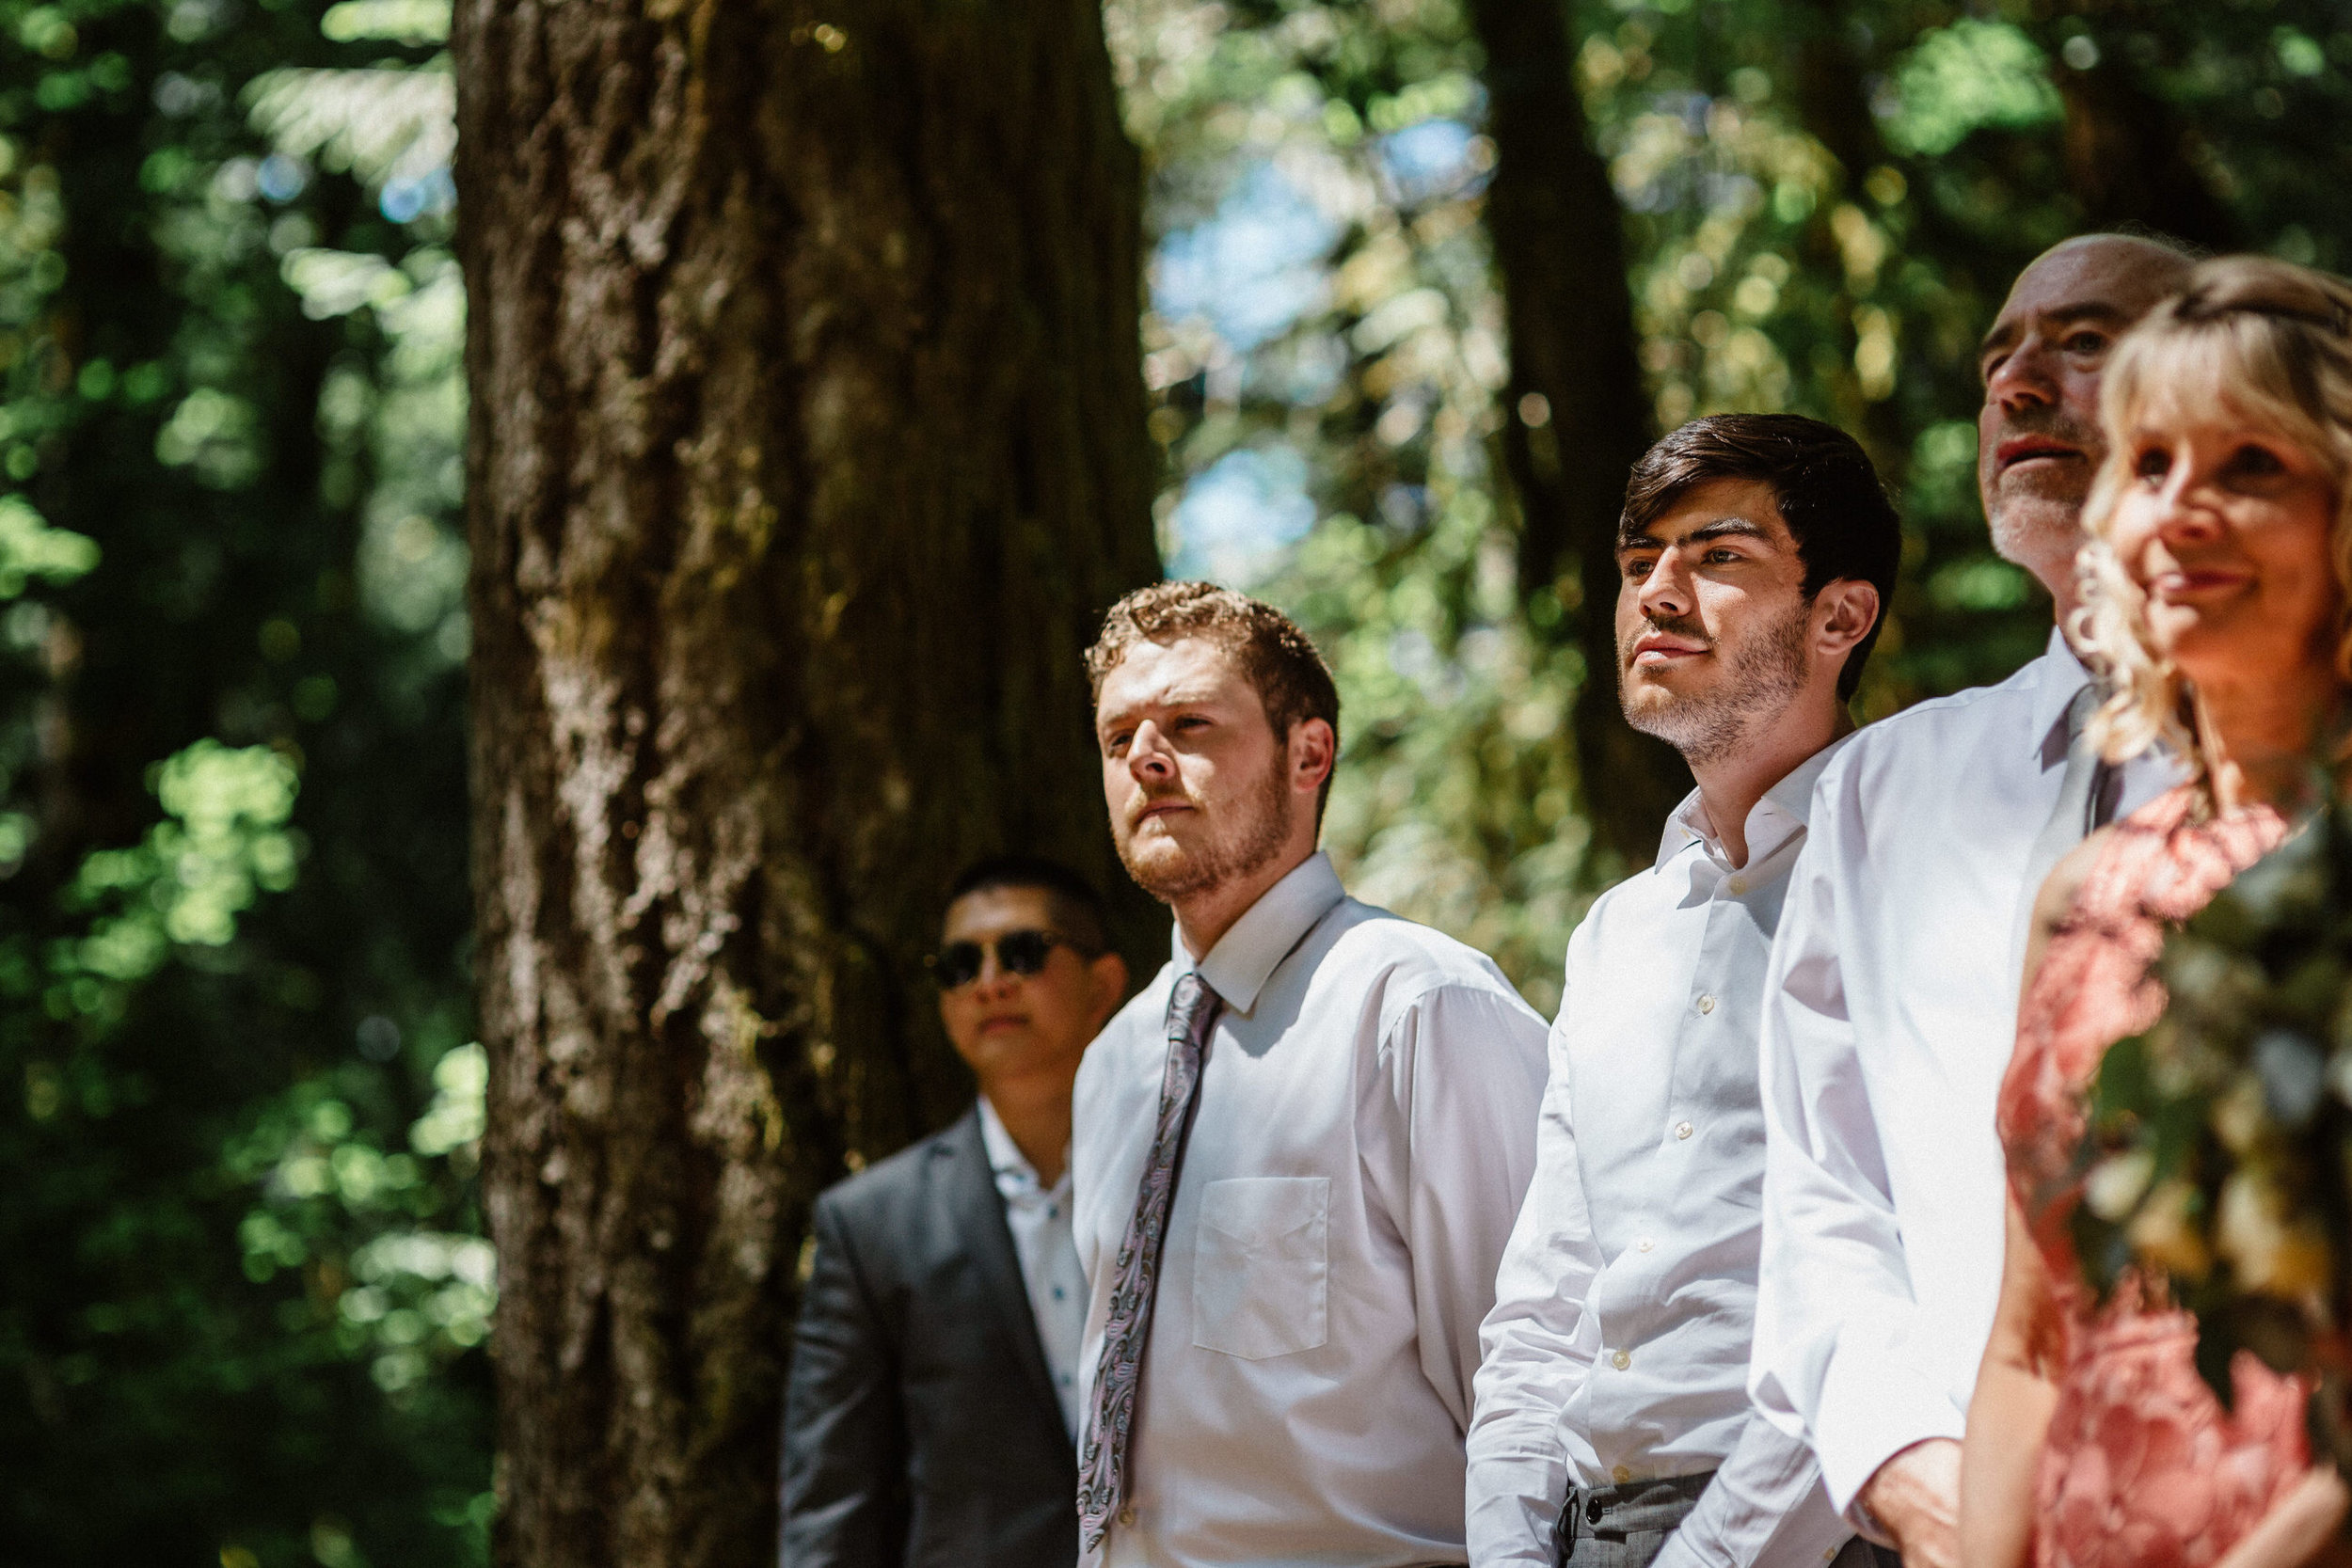 MT Hood Wildwood elopement wedding oregon portland photography0021.JPG